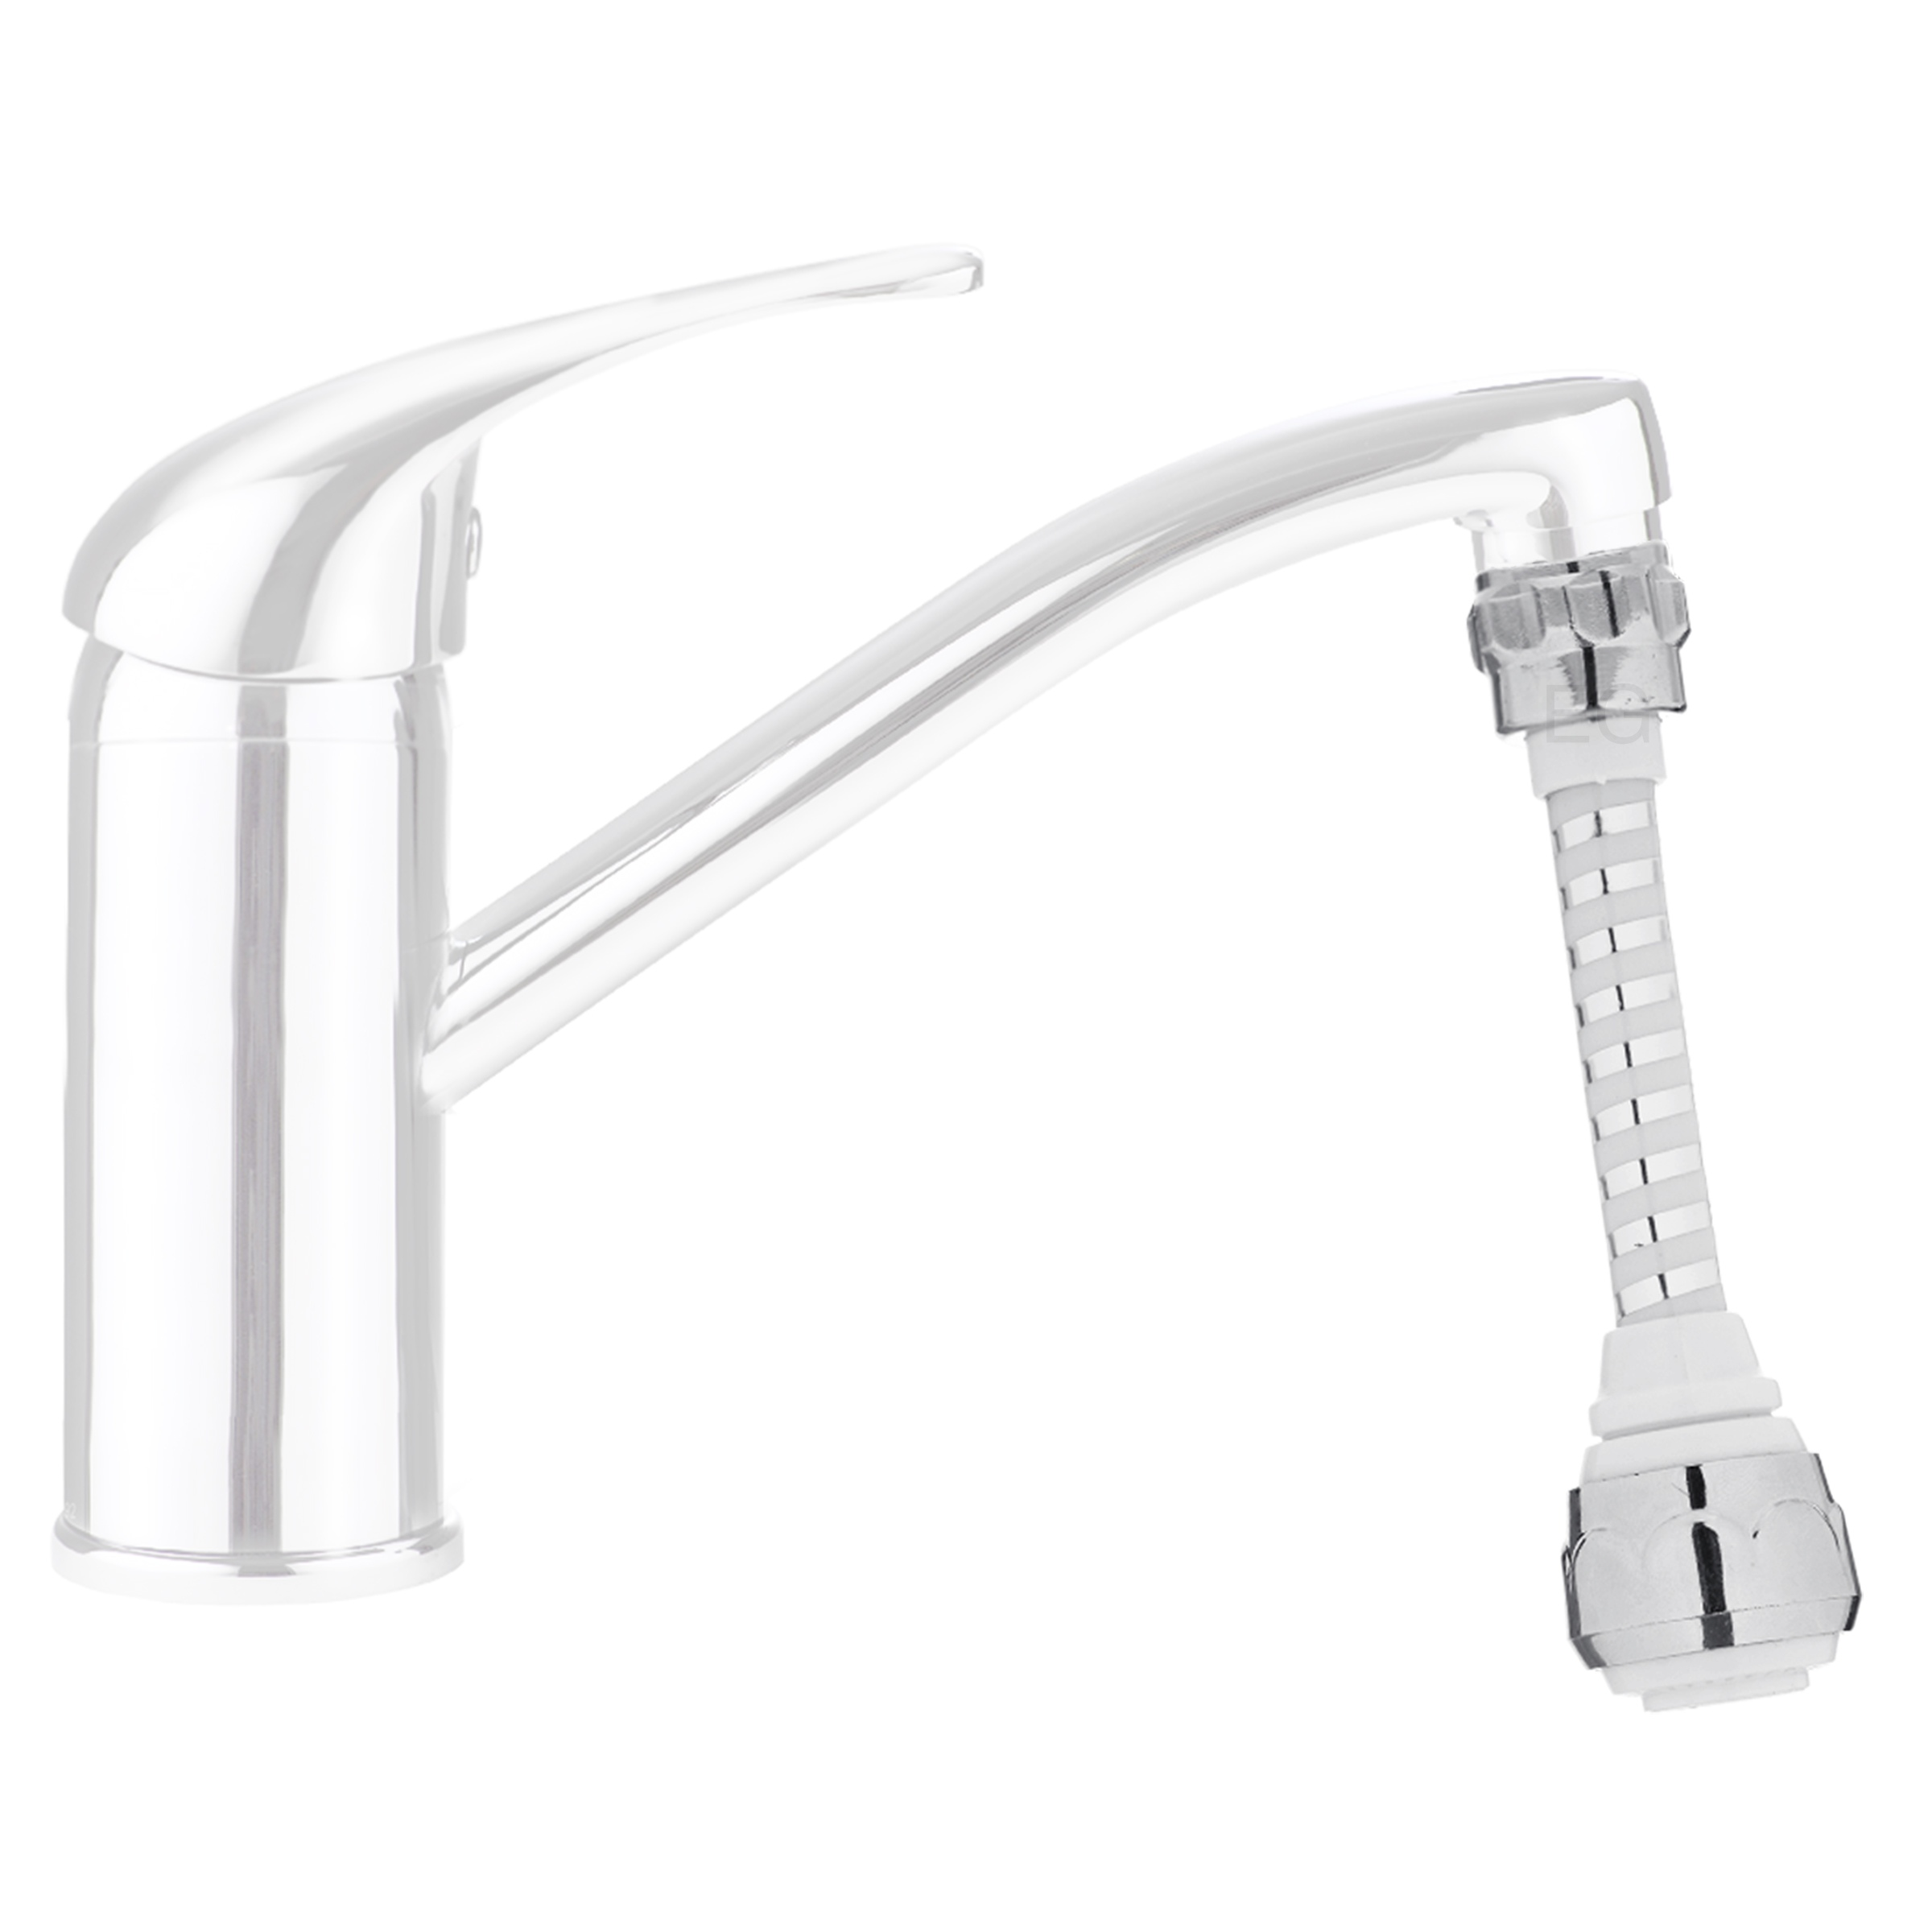 Water Saving Kitchen Tap Aerator Hose Adjustable Faucet Adapter